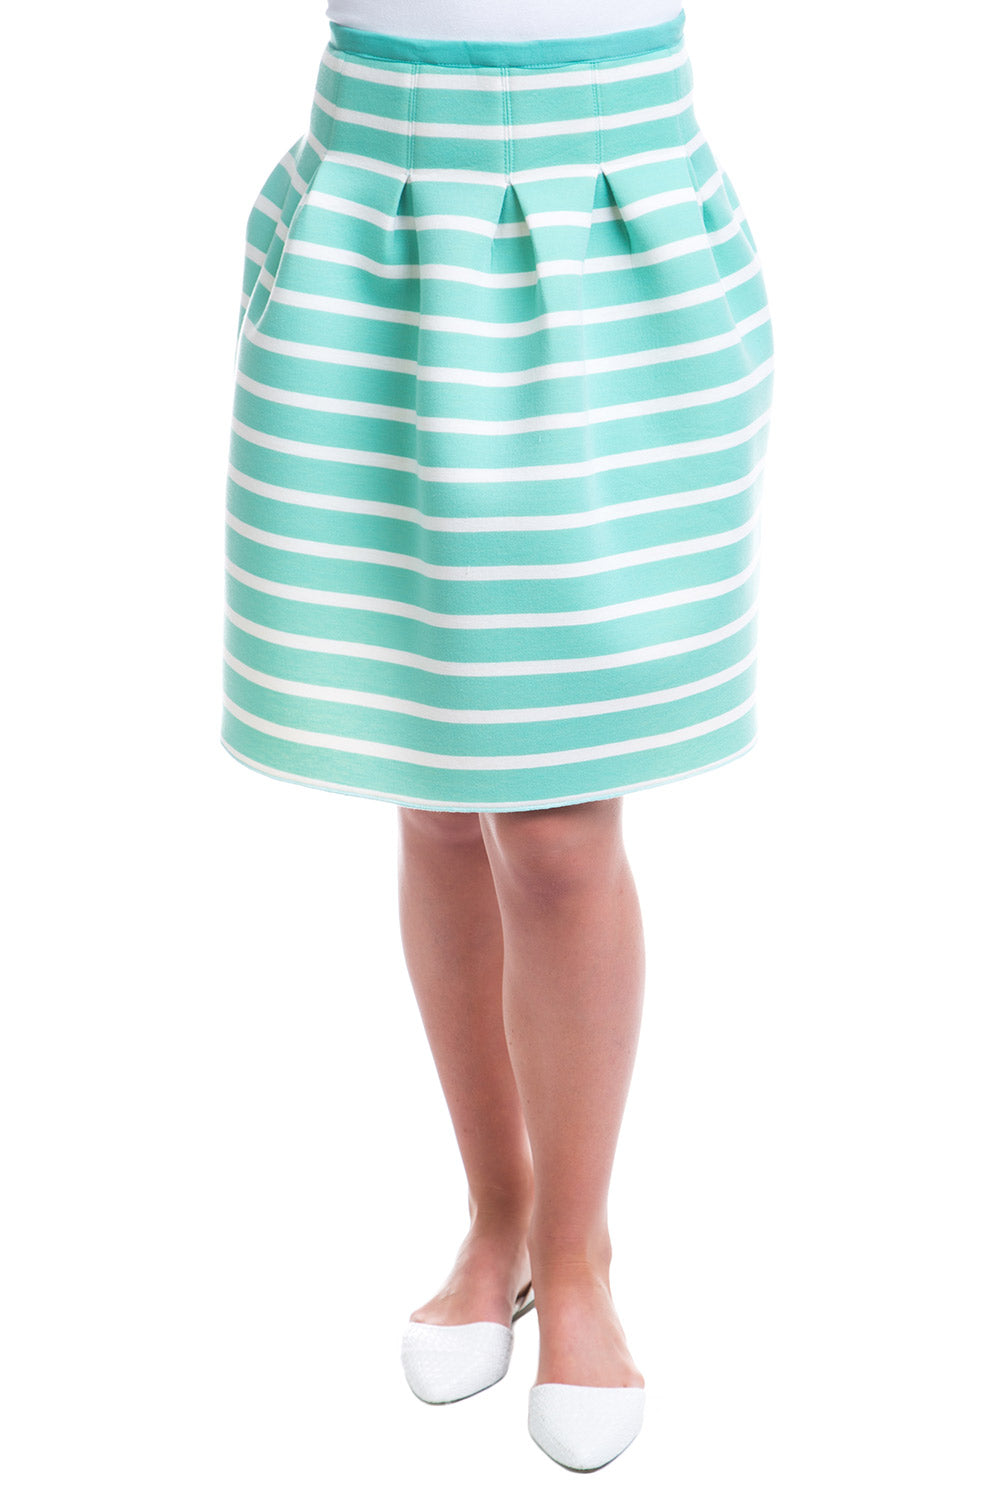 Type 1 Hackney Stripe Skirt